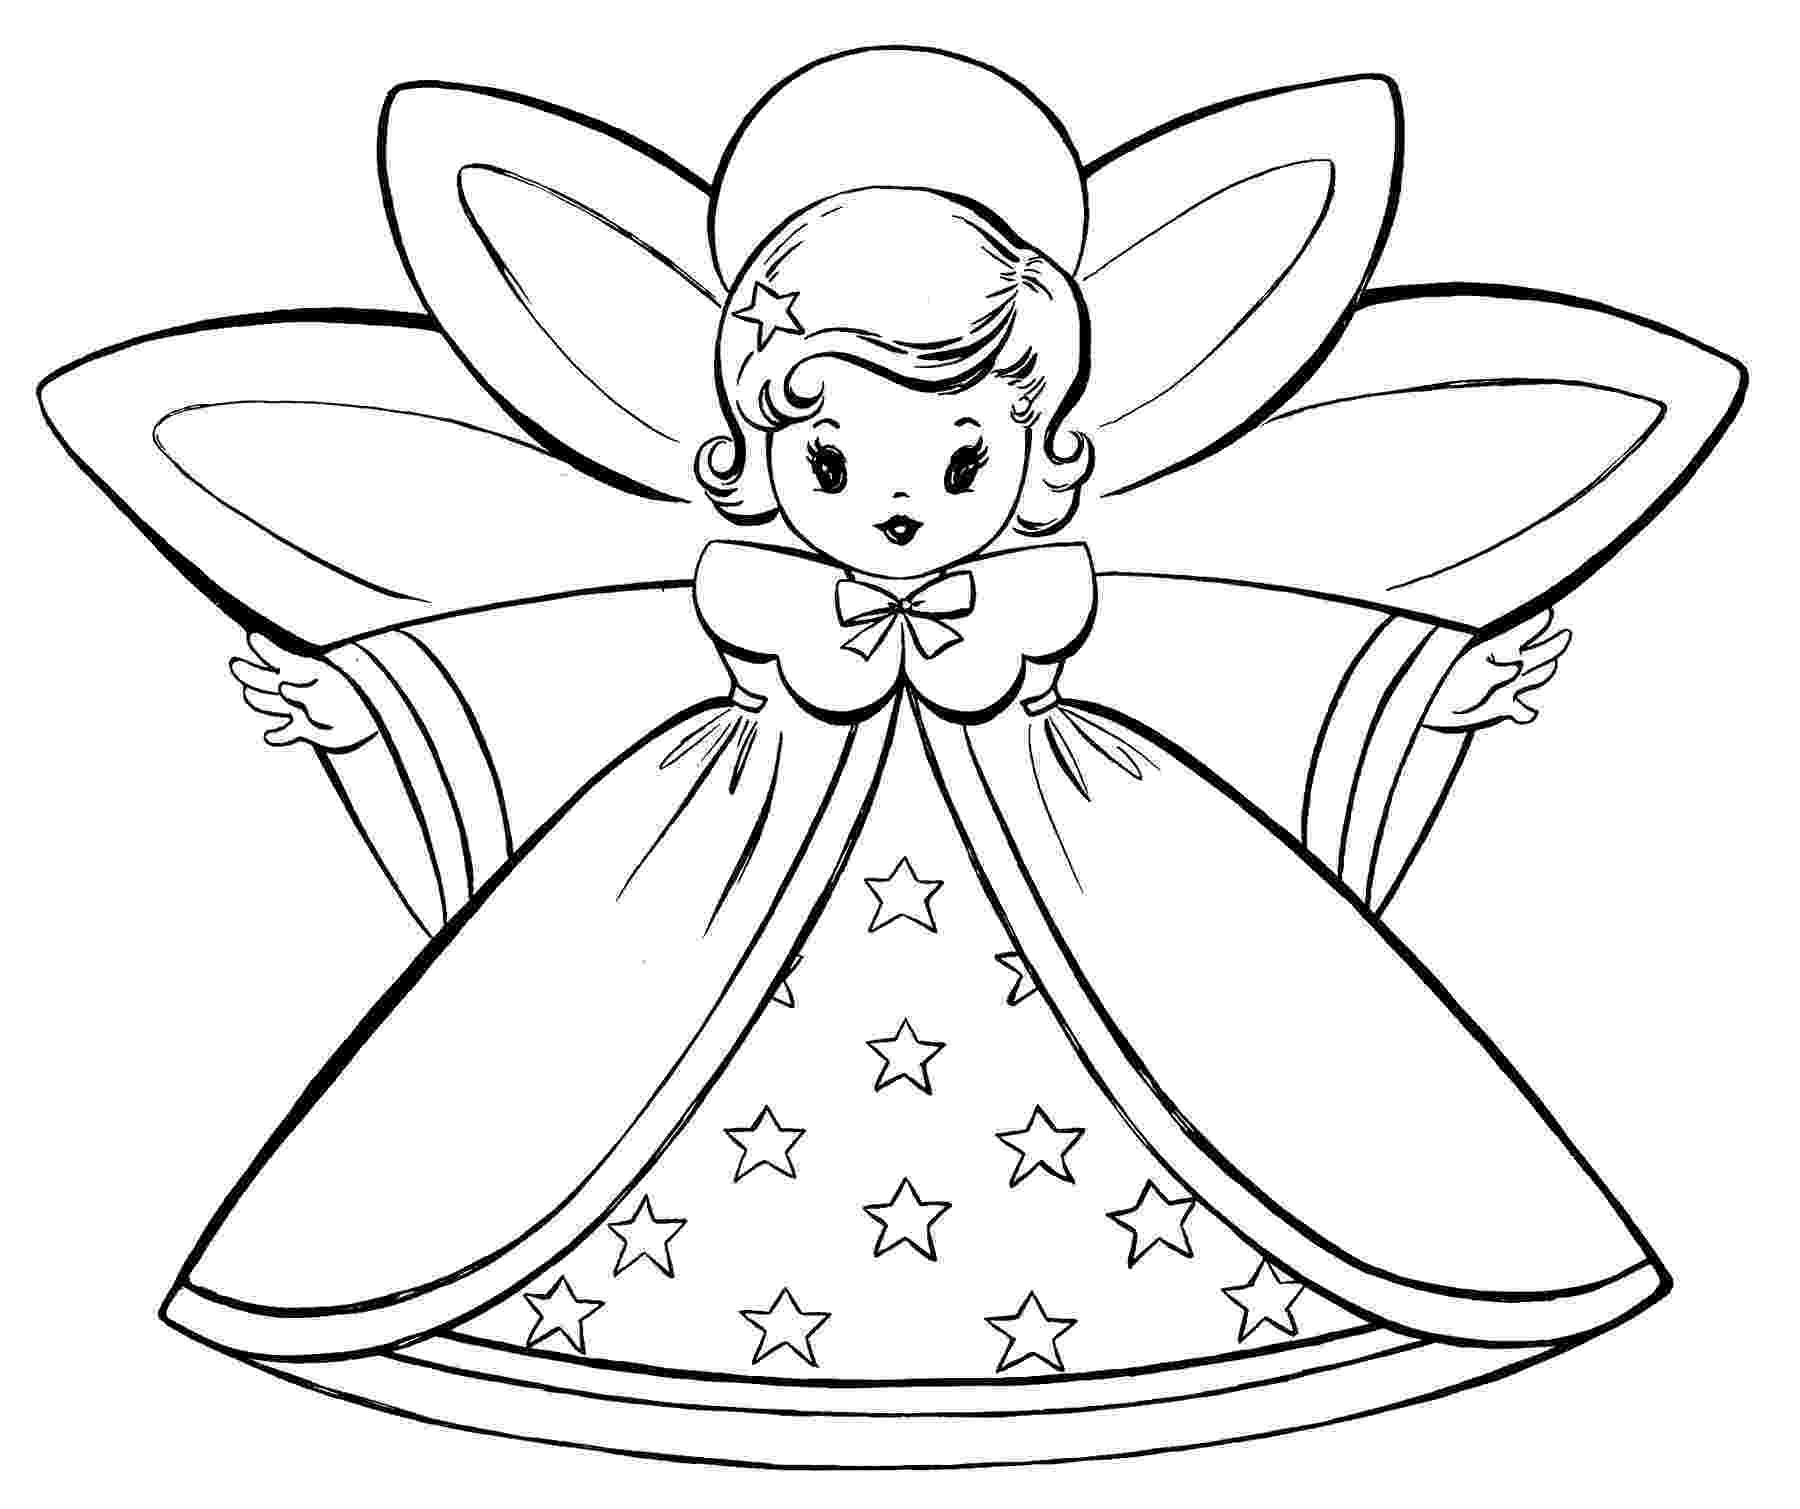 free printable christmas coloring pages free christmas coloring pages retro angels the printable coloring christmas free pages